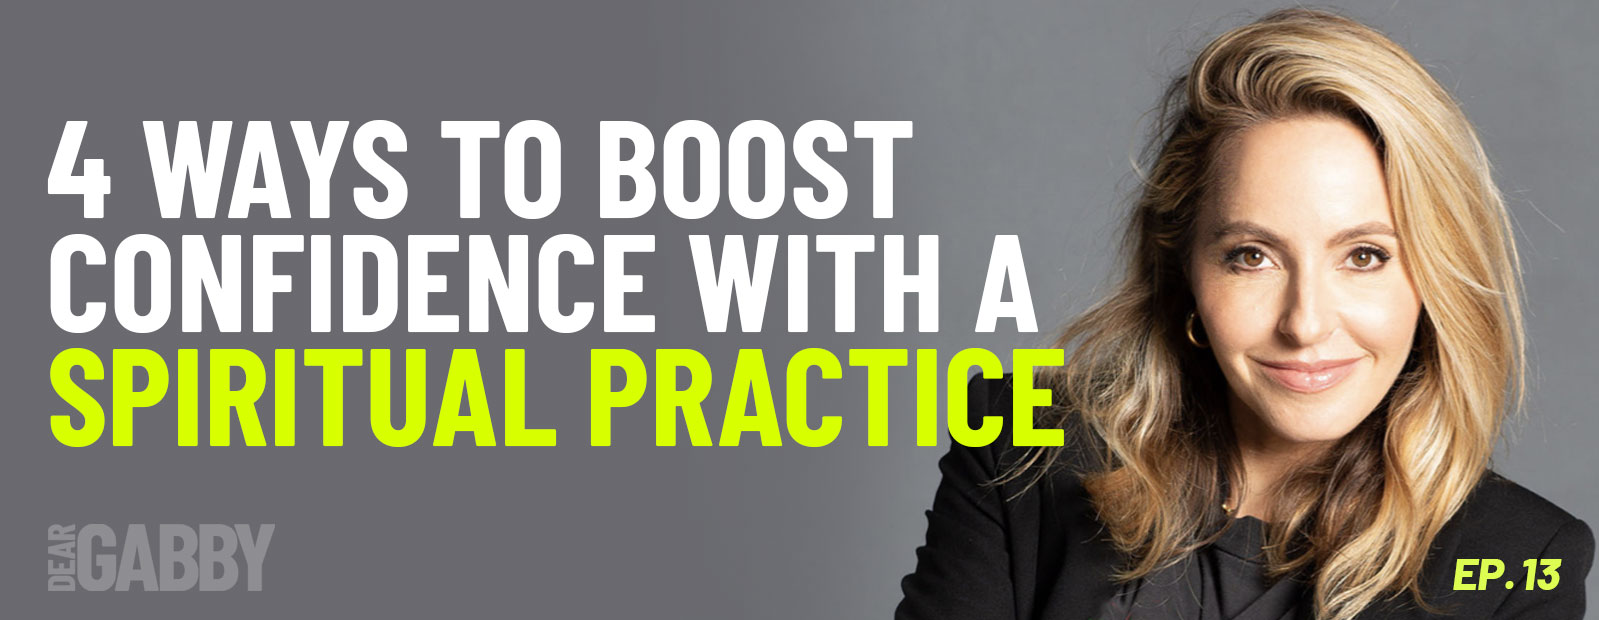 4 Ways to Boost Confidence with a Spiritual Practice